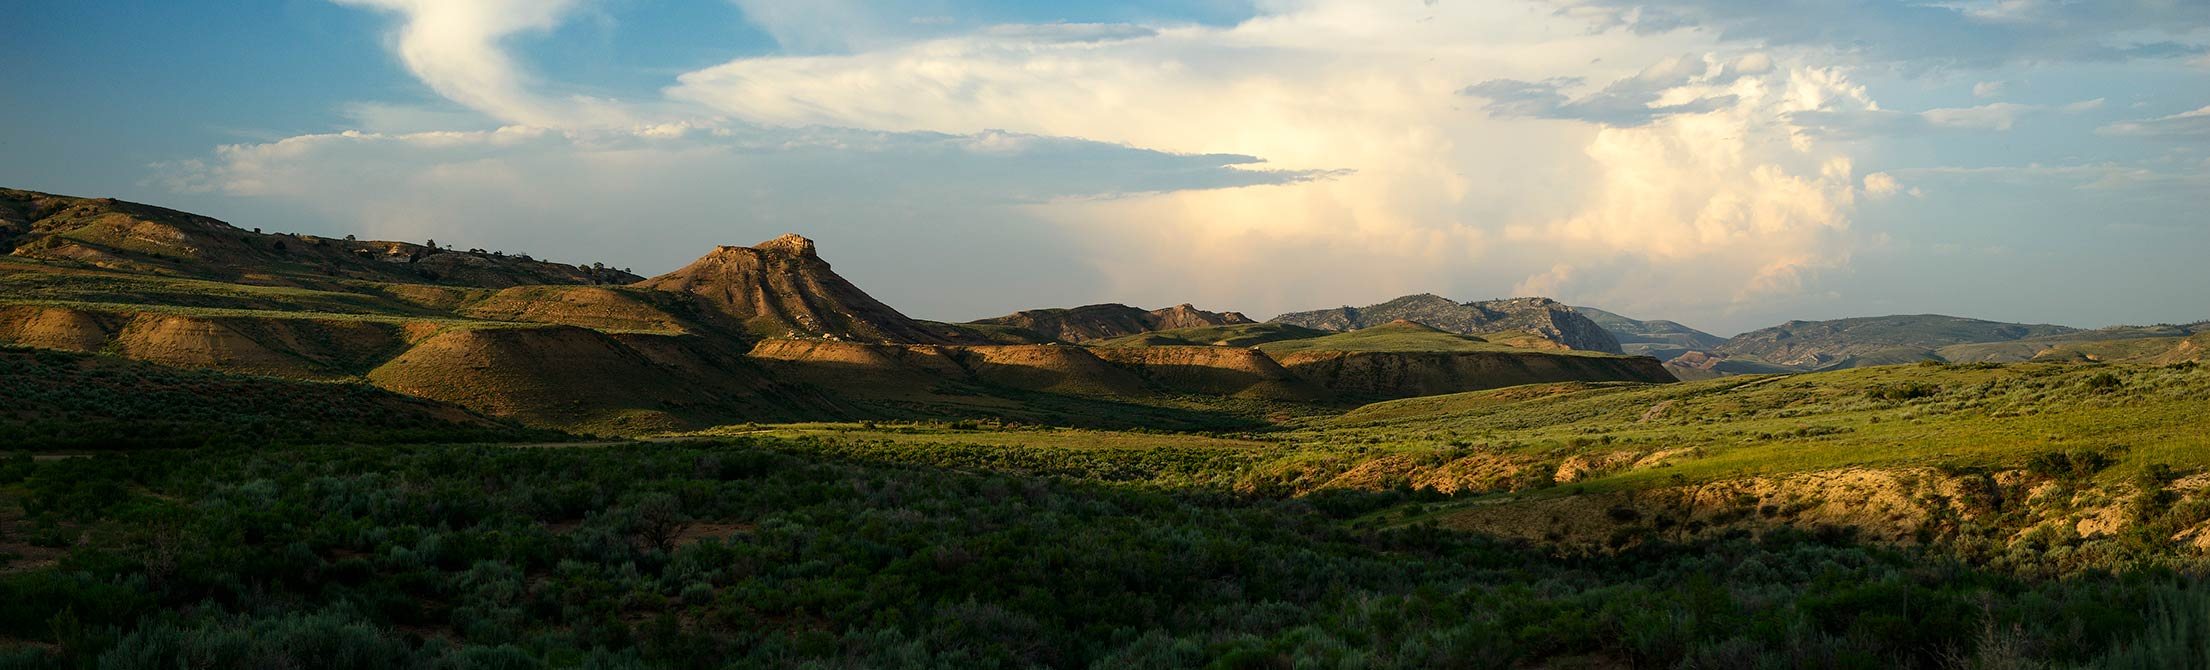 image of wyoming landscape